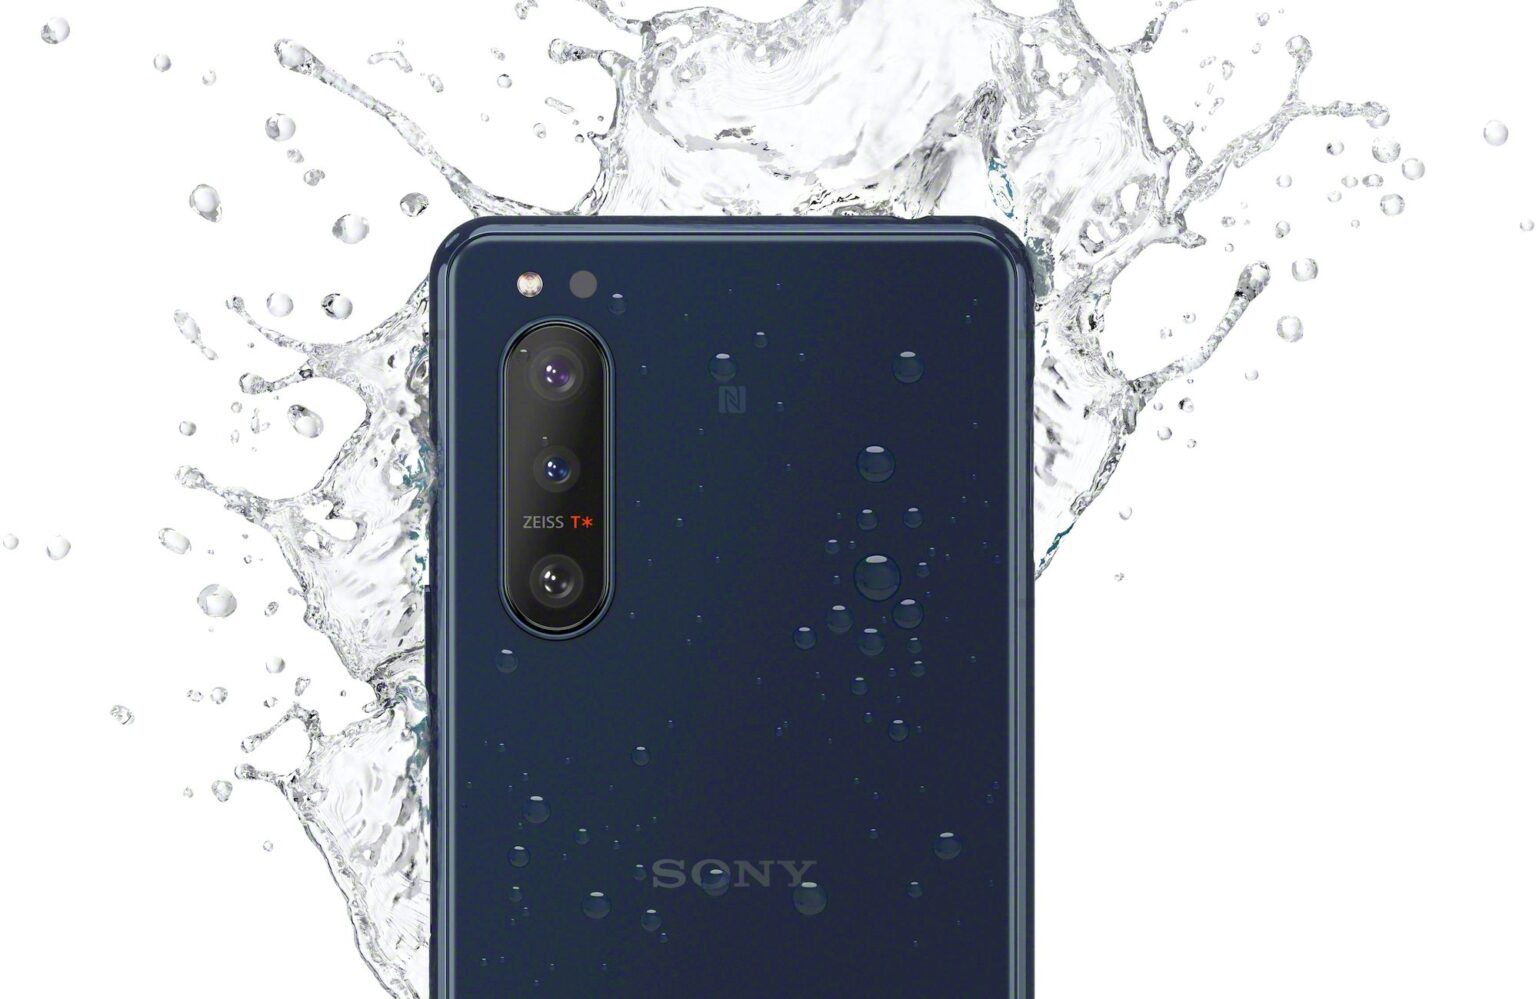 https://www.xperiablog.net/wp-content/uploads/2020/08/Sony-Xperia-5-II-Official_4-1536x999.jpg